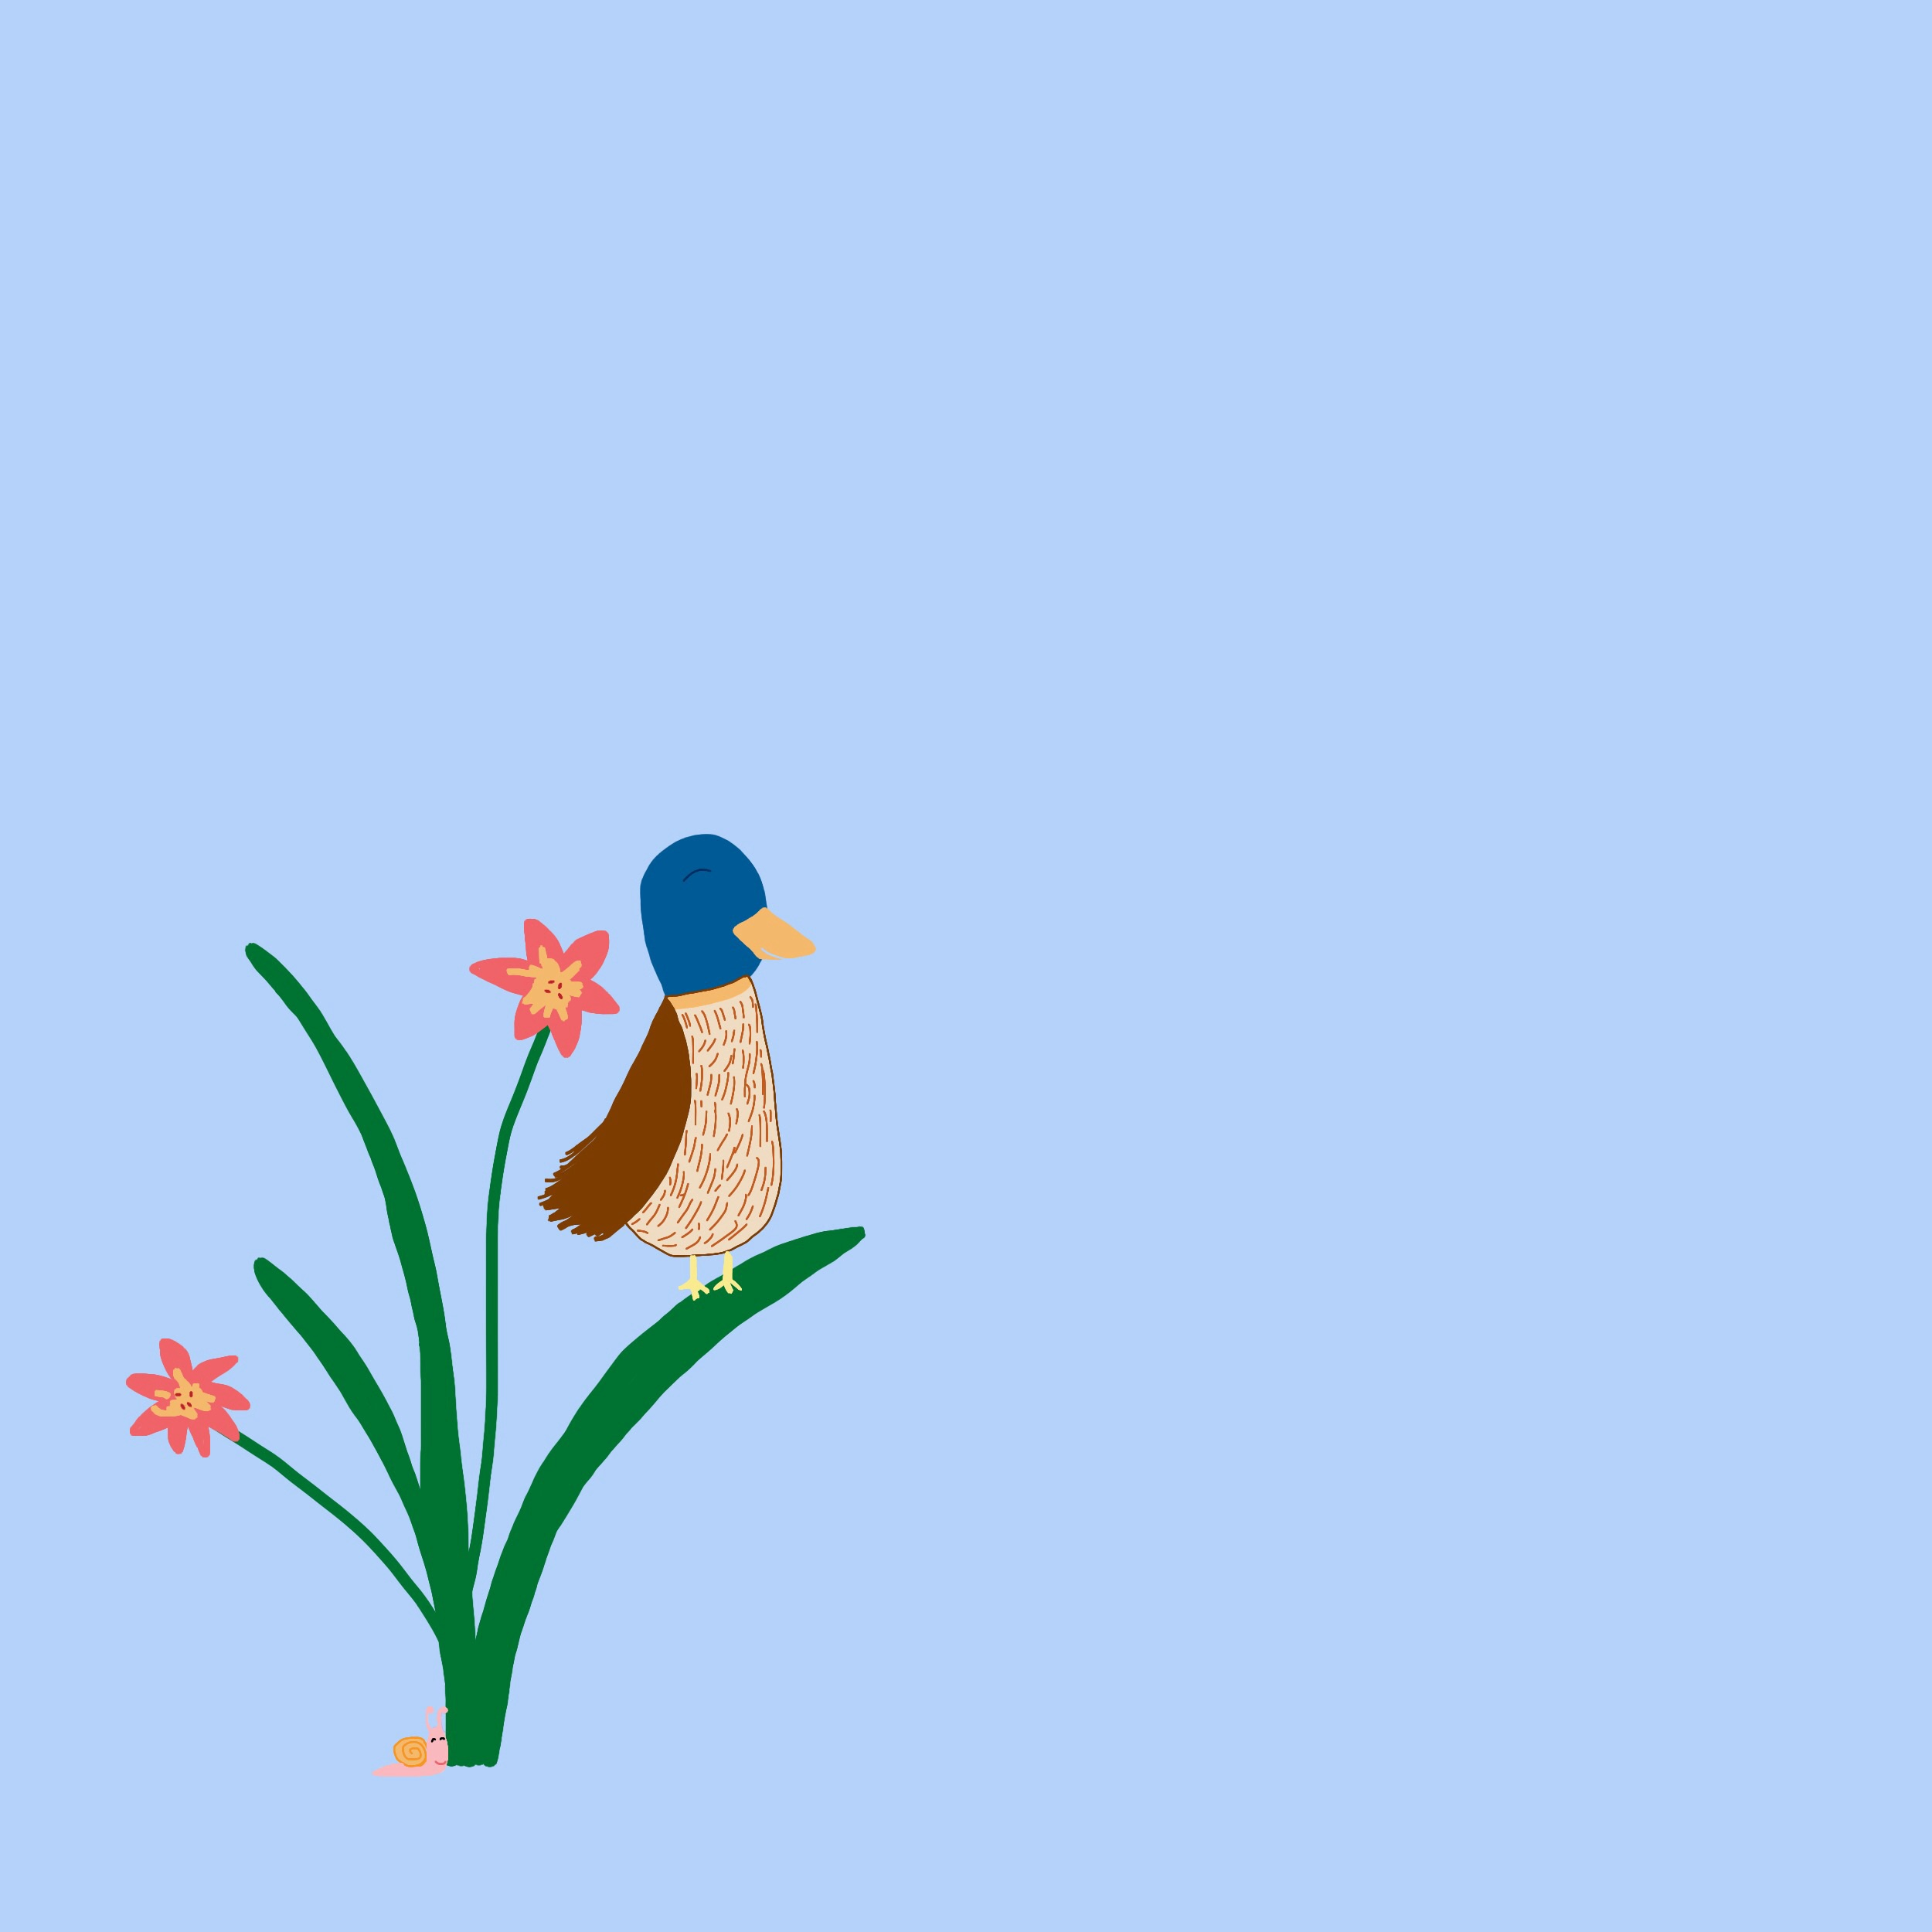 Blue-faced Honeyeater clipart #2, Download drawings